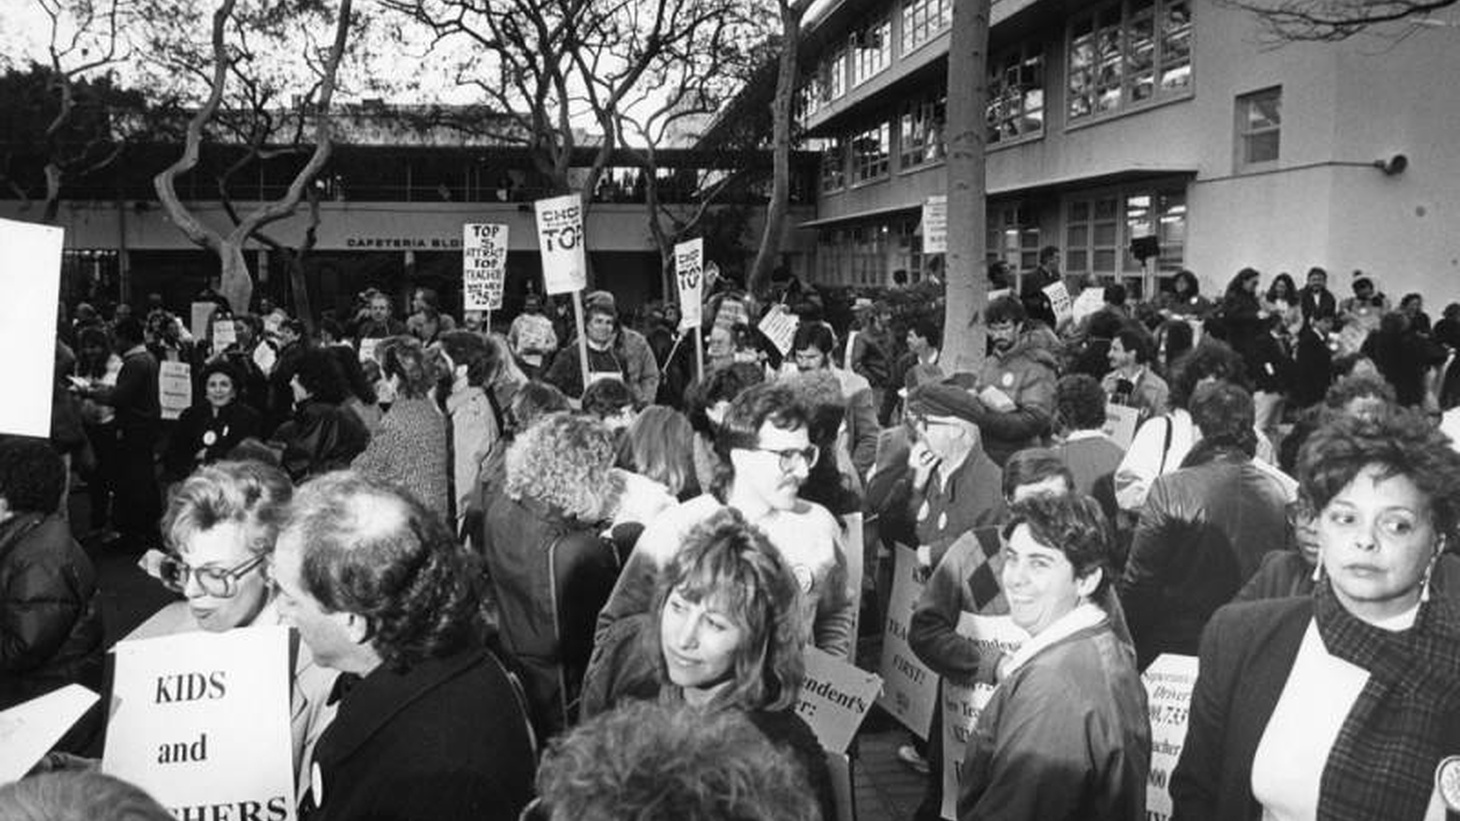 Teachers gather at LAUSD headquarters in preparation for a demonstration march. January 11, 1989.